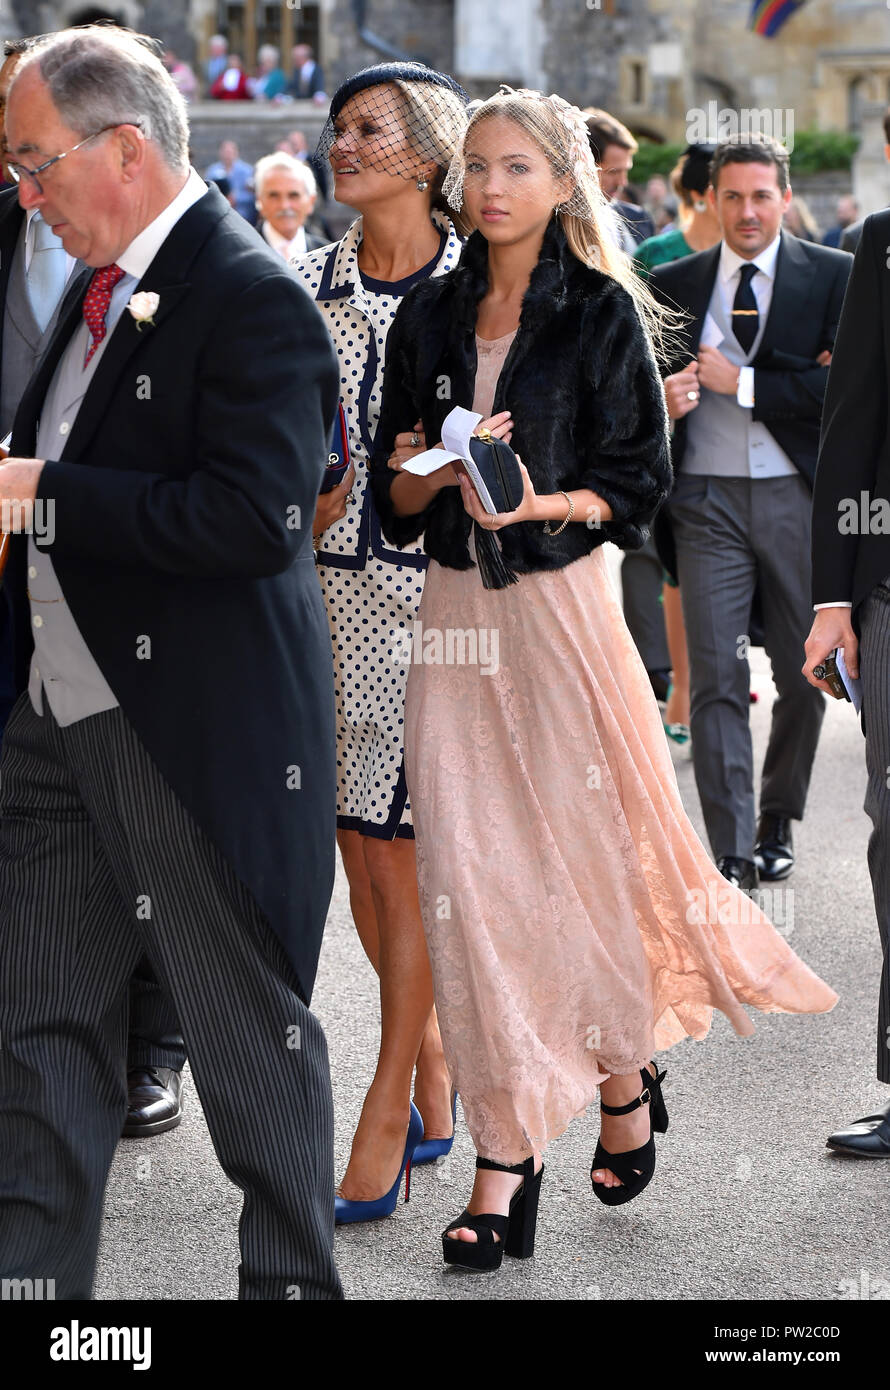 Kate Moss and Lila Grace Moss Hack (right) arrive for the wedding of Princess Eugenie to Jack Brooksbank at St George's Chapel in Windsor Castle. - Stock Image